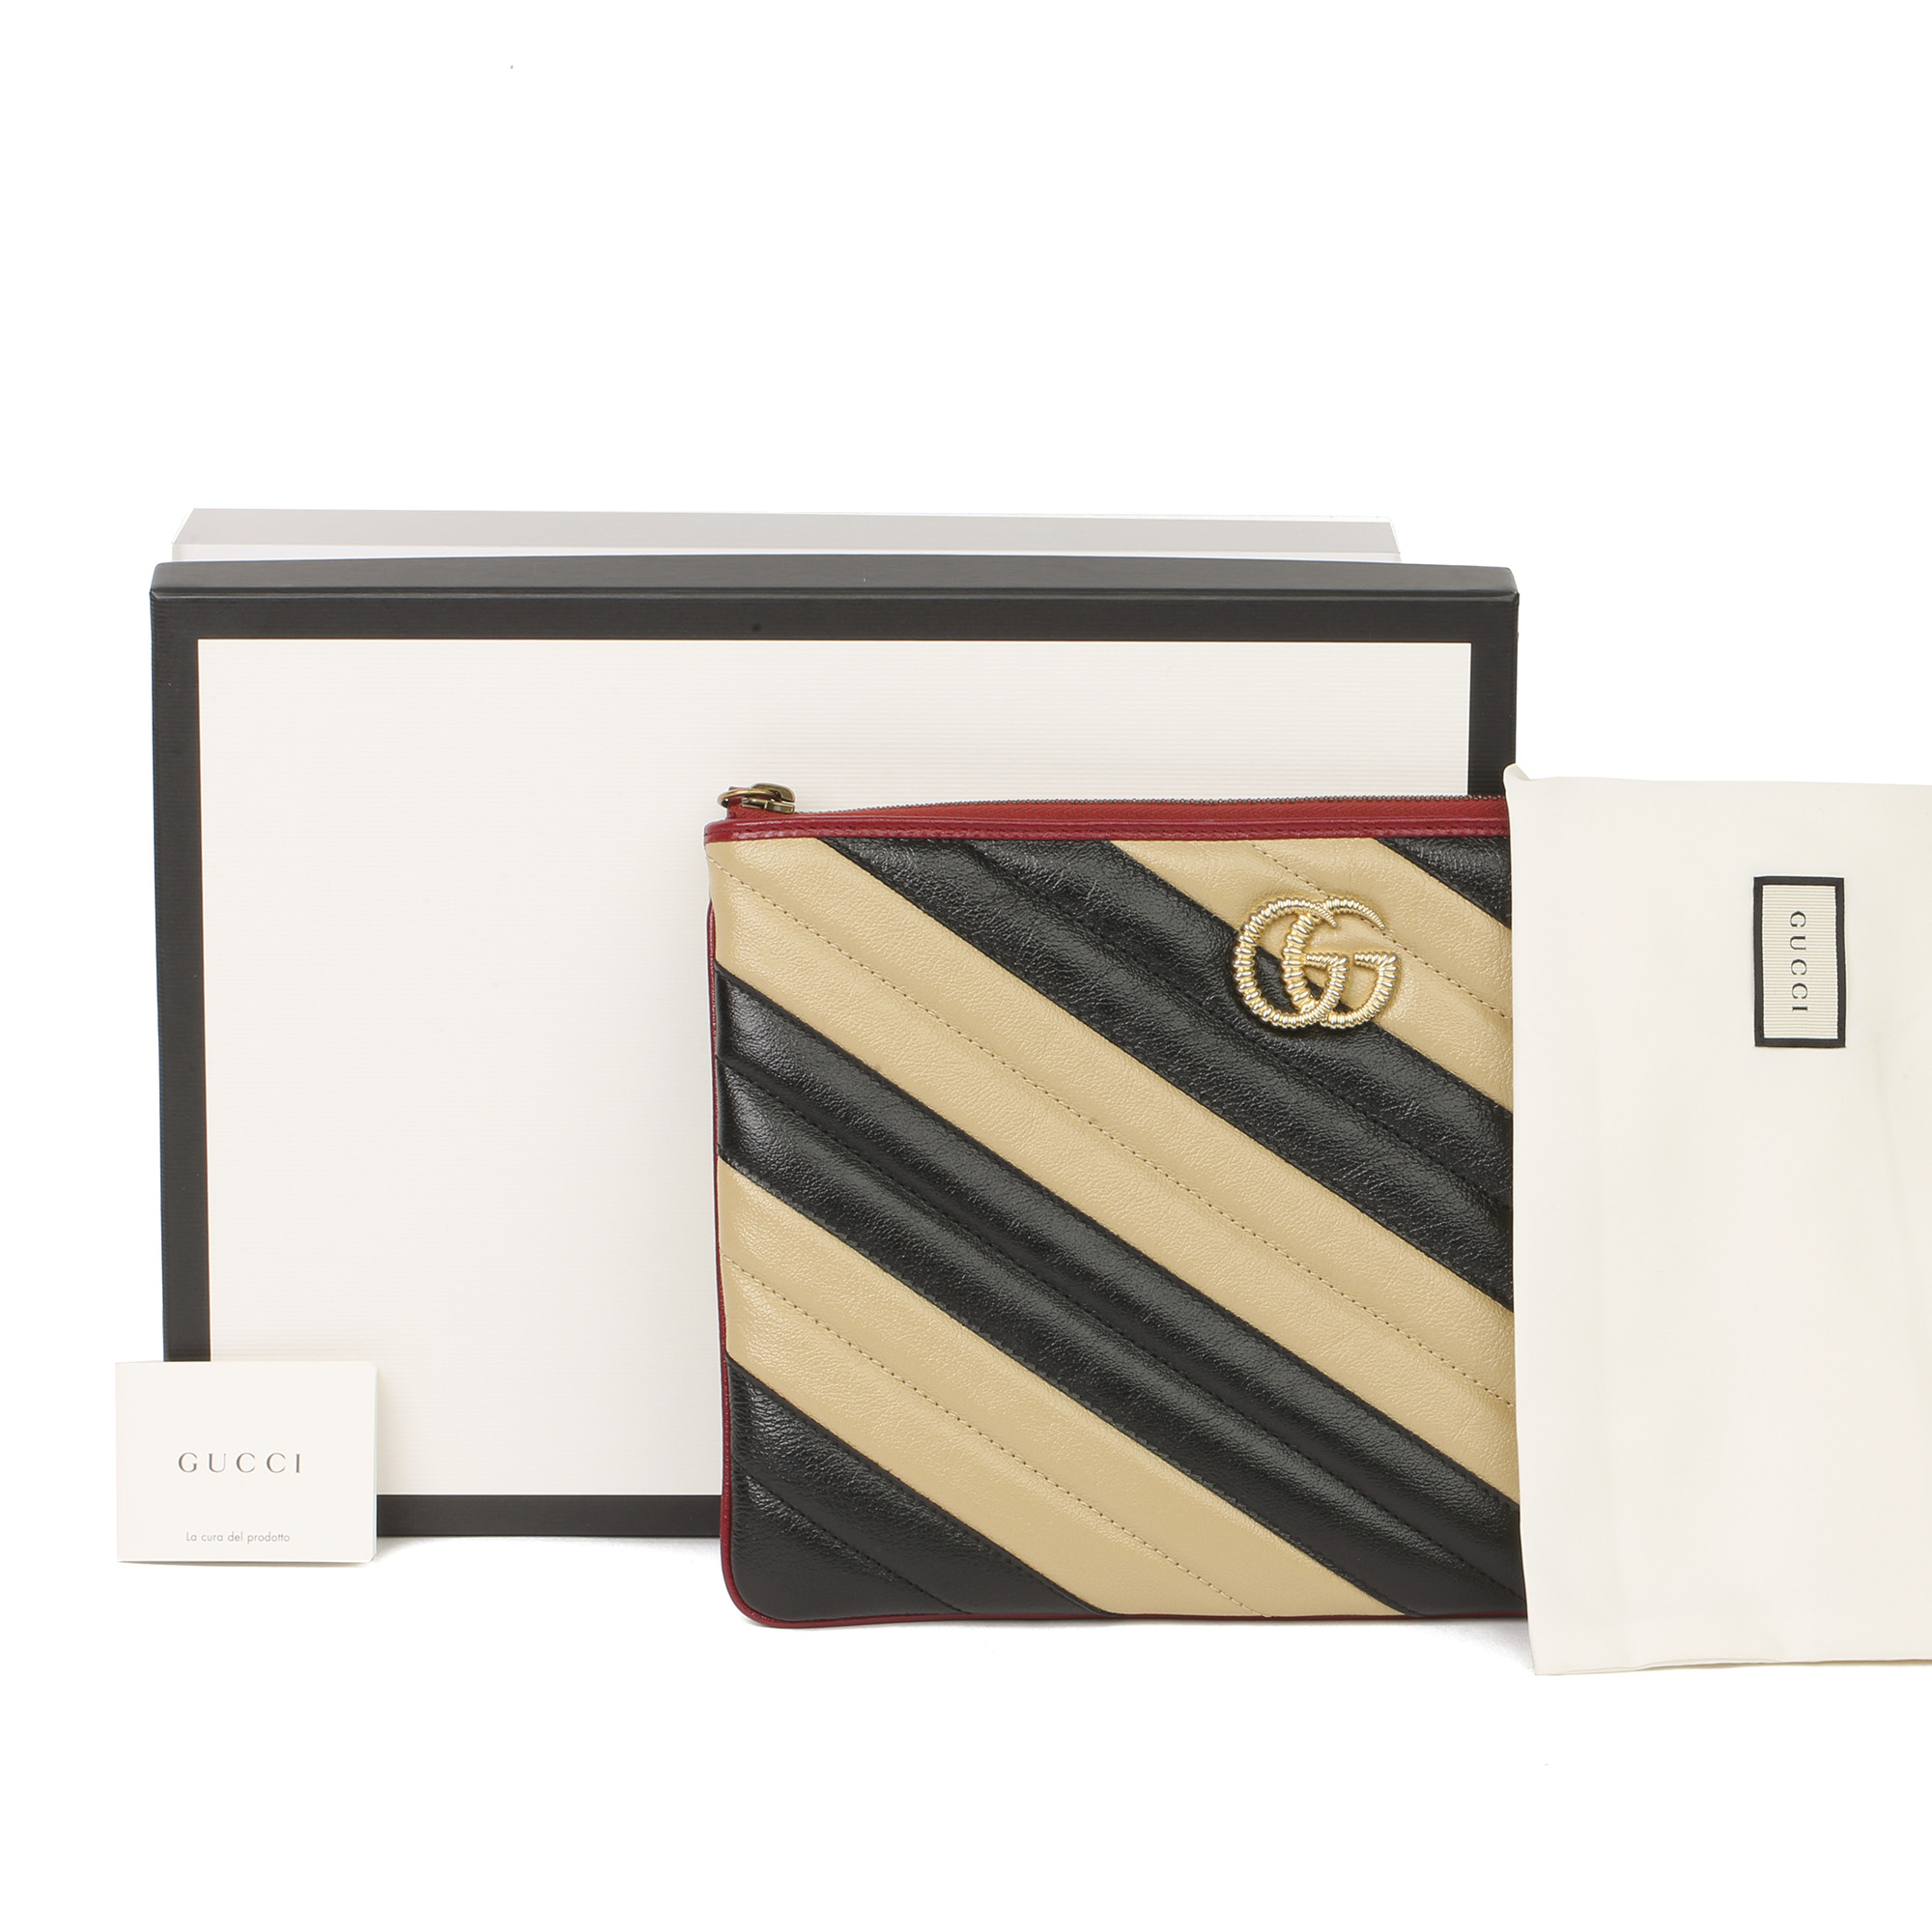 Gucci Black, Cream & Red Diagonal Quilted Aged Calfskin Leather Marmont Pouch - Image 2 of 11